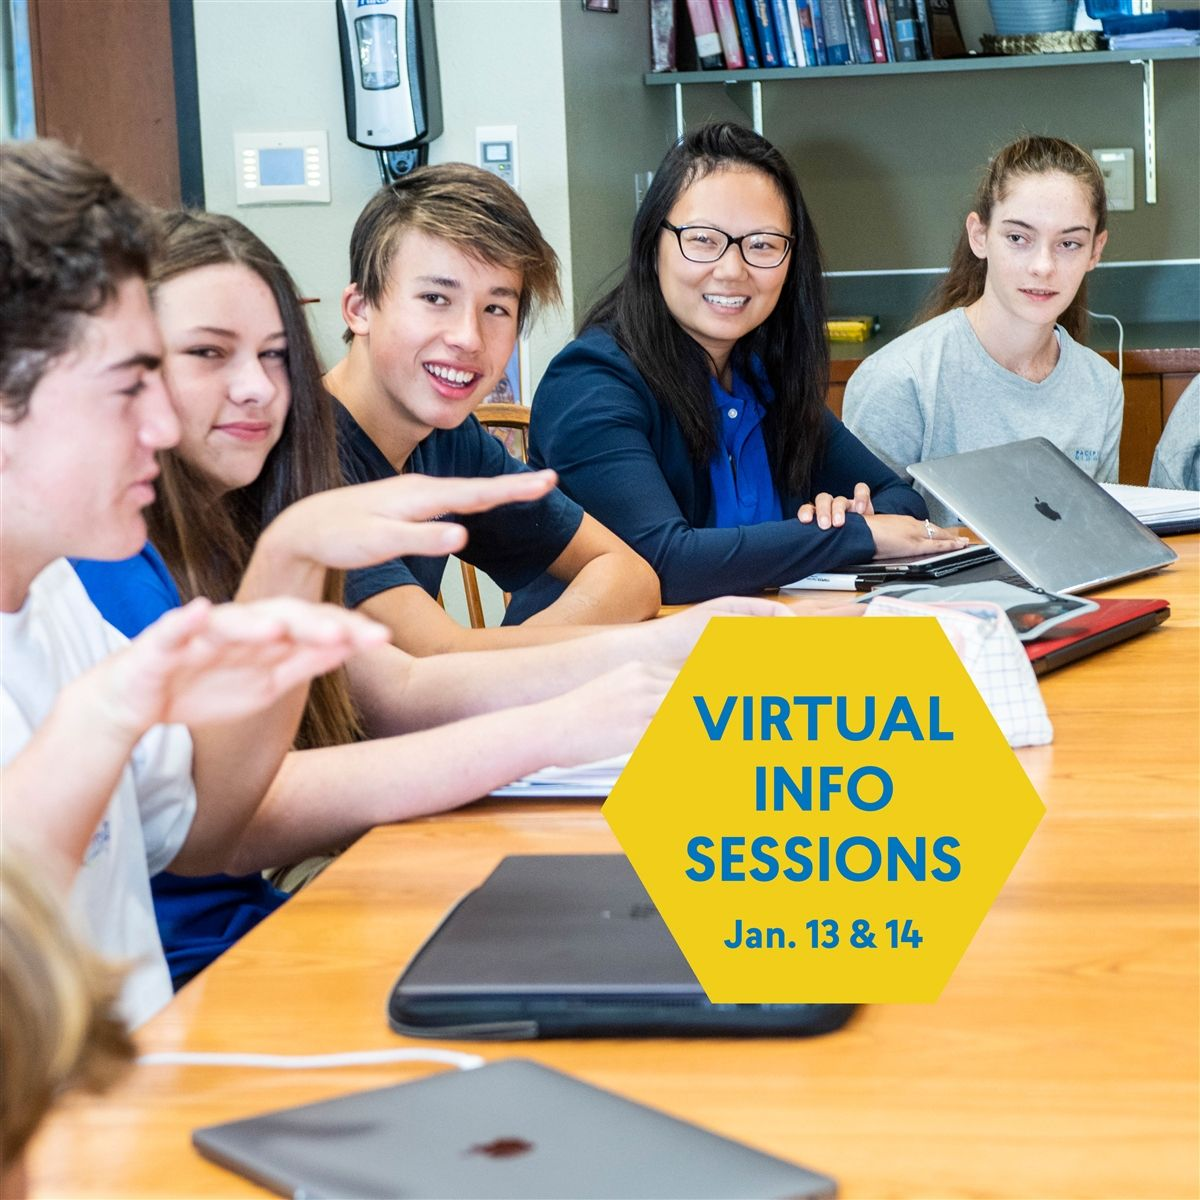 VIRTUAL INFO SESSIONS